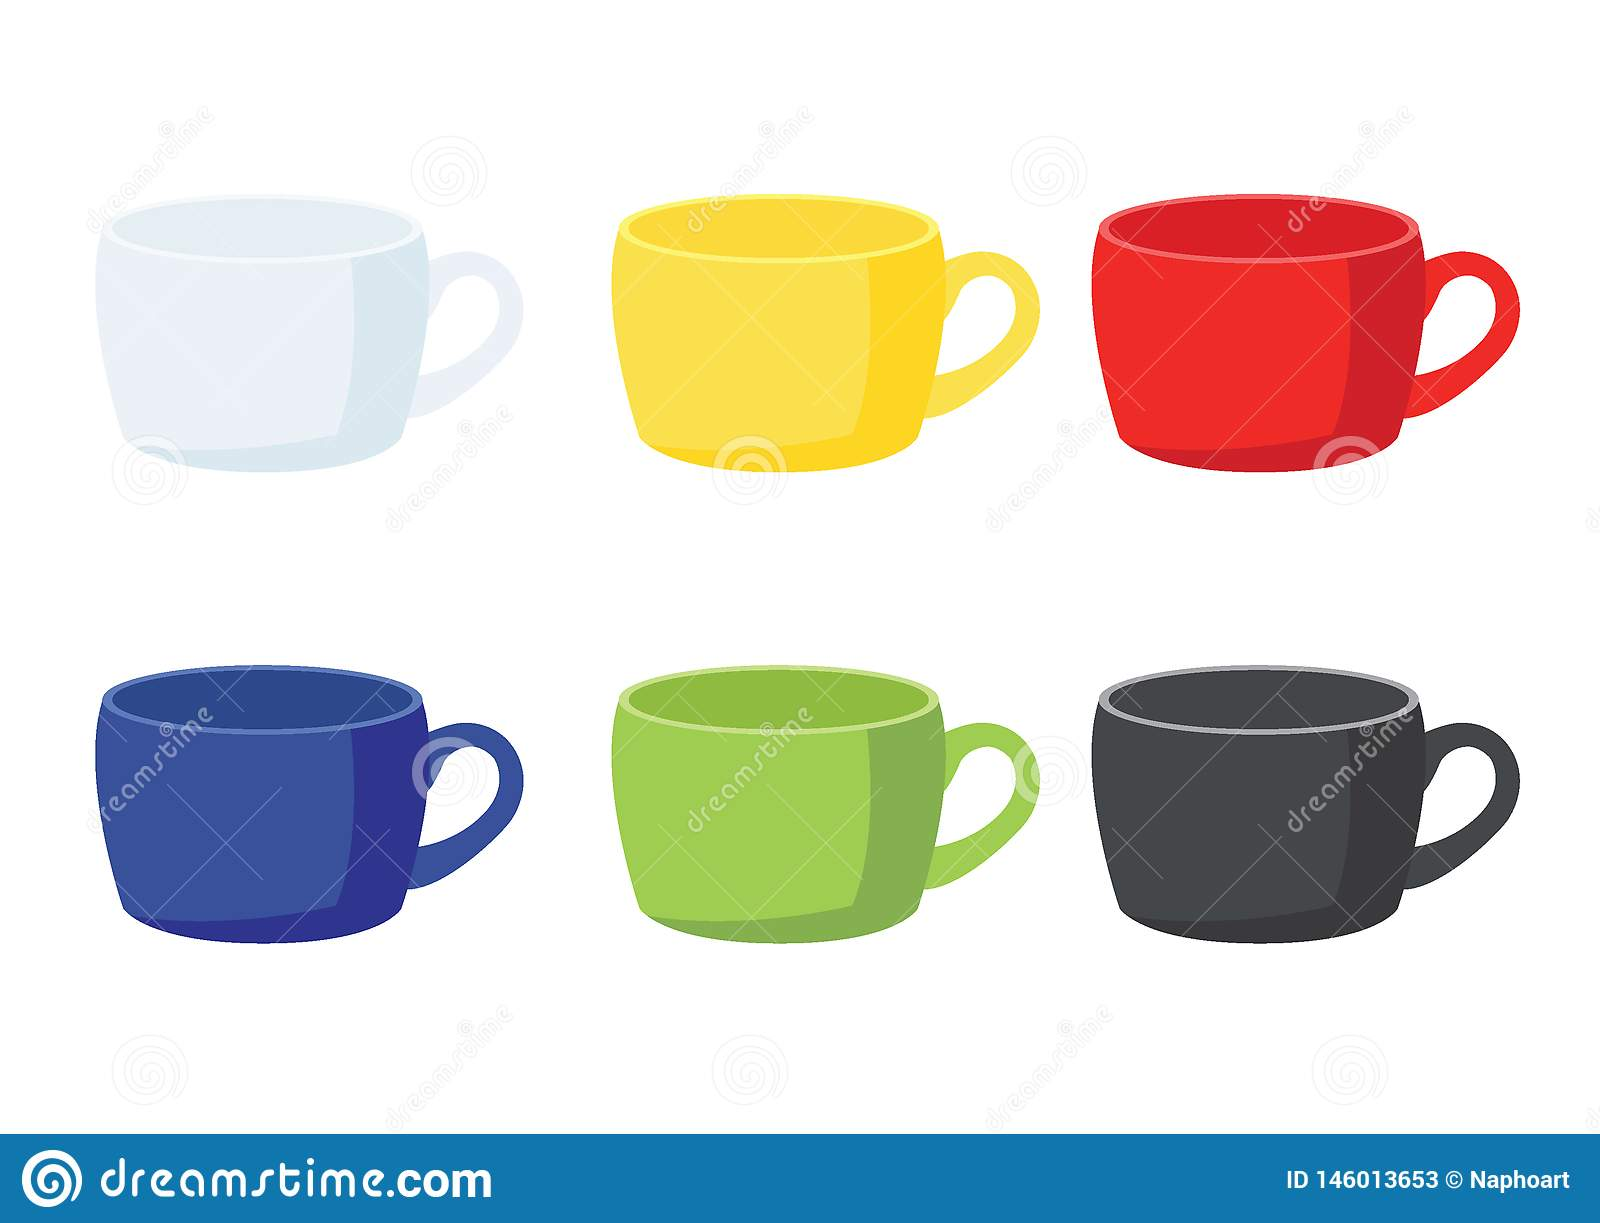 Coffee cup yellow on white background